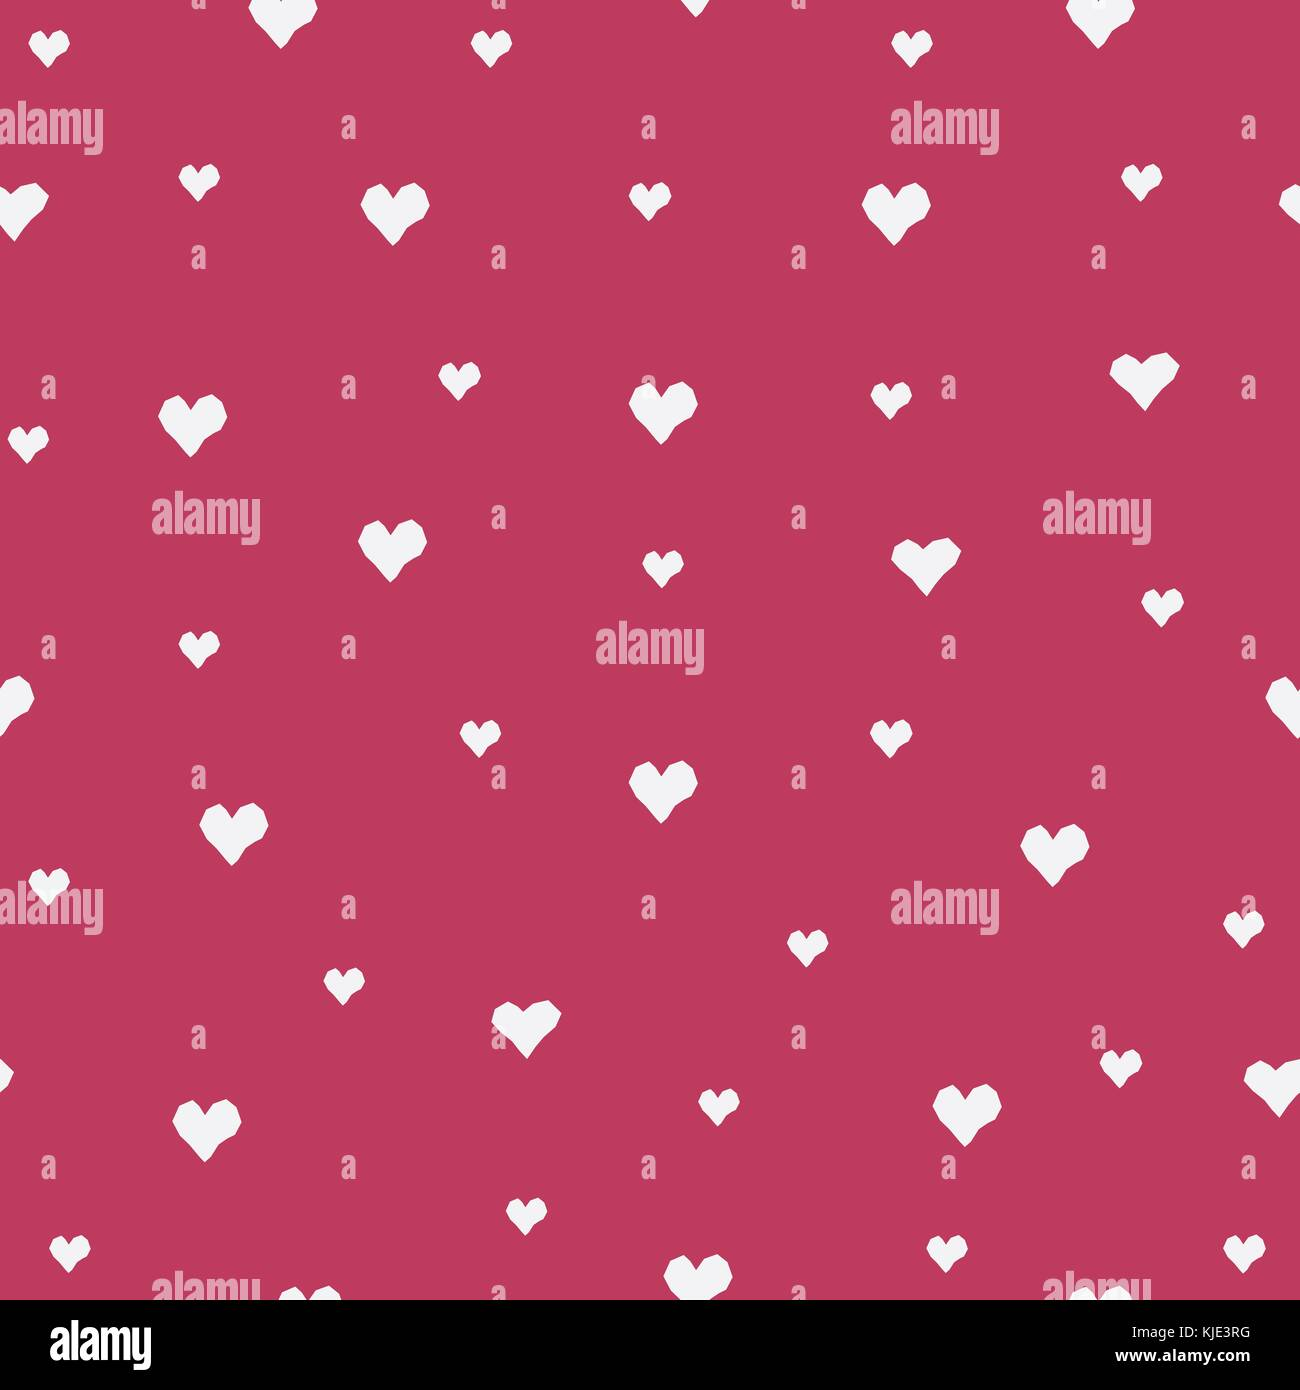 Seamless Heart Pattern on pink. Vector Illustration - Stock Vector